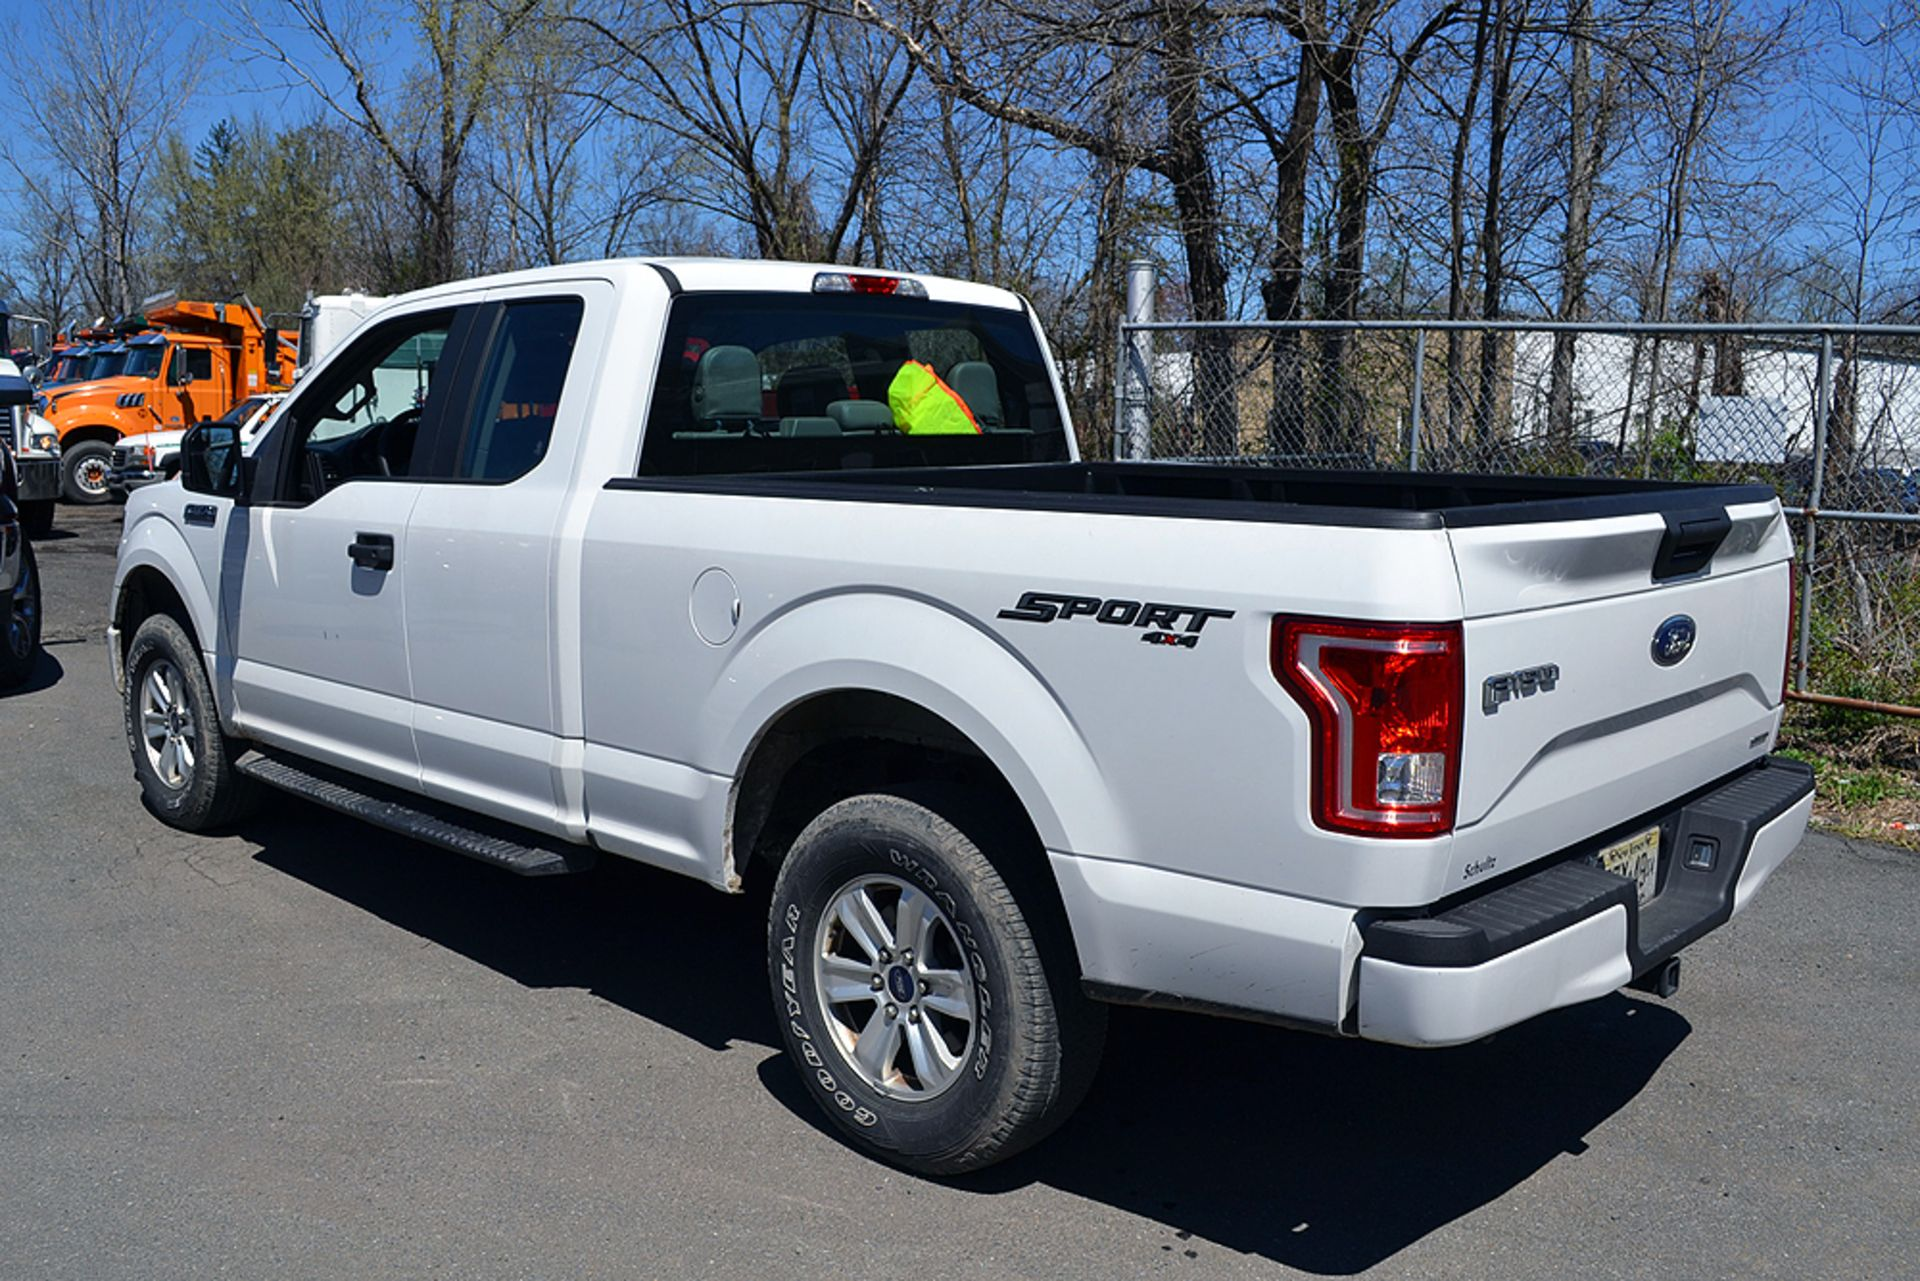 Lot 14 - 2015 Ford F150 Lariat SuperCab, 4WD Pick Up Truck